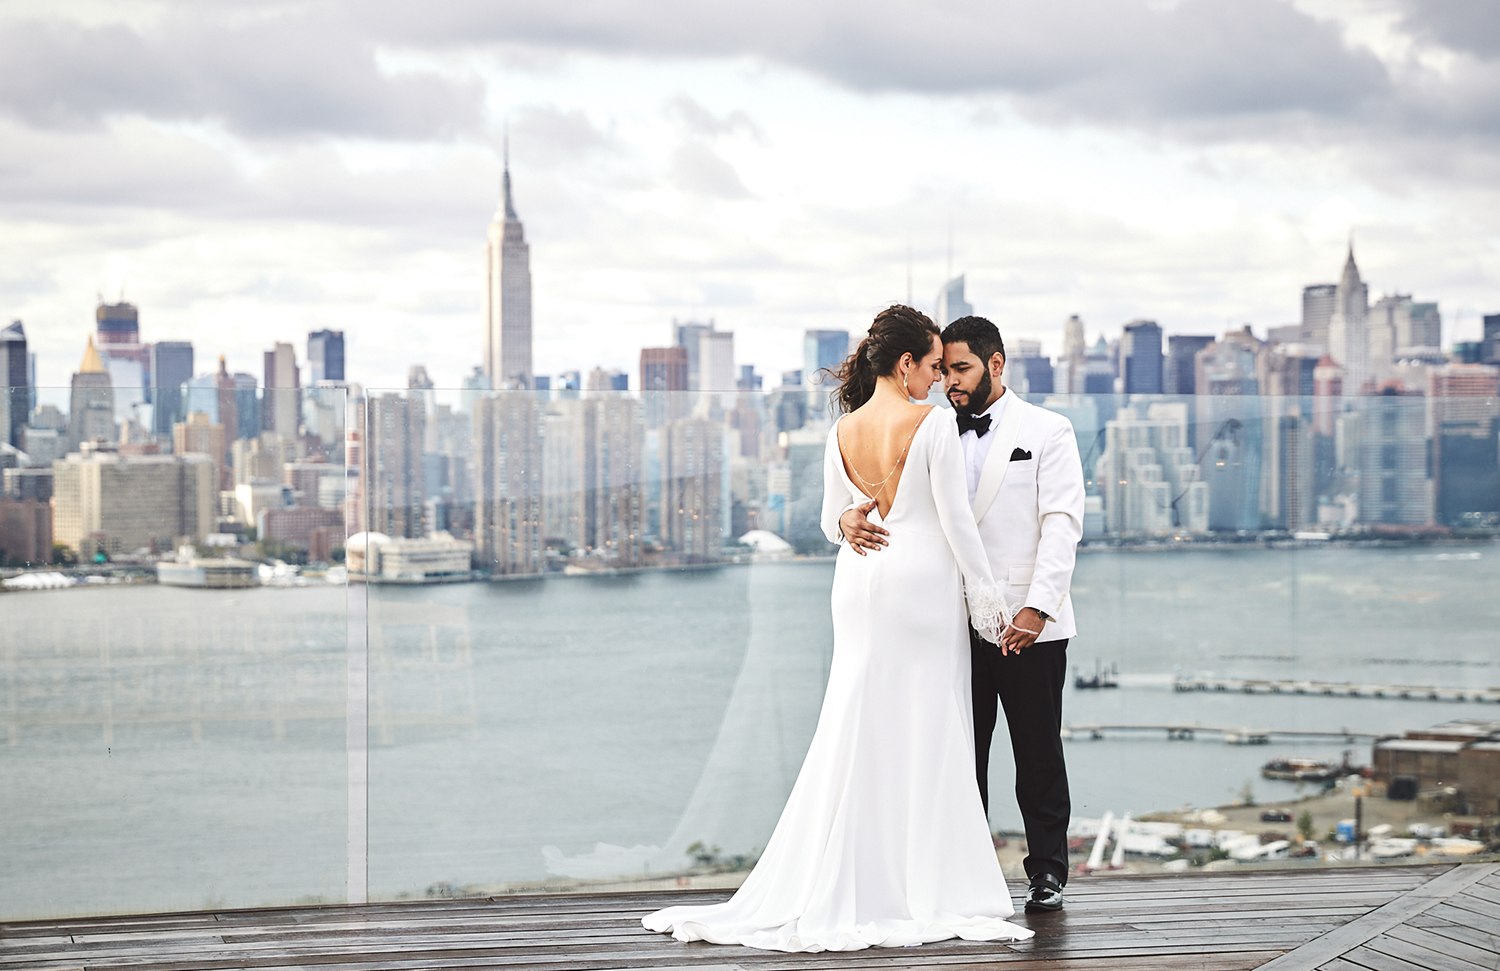 170930_WilliamValeWeddingPhotography_BrooklynWeddingPhotographer_By_BriJohnsonWeddings_0094.jpg